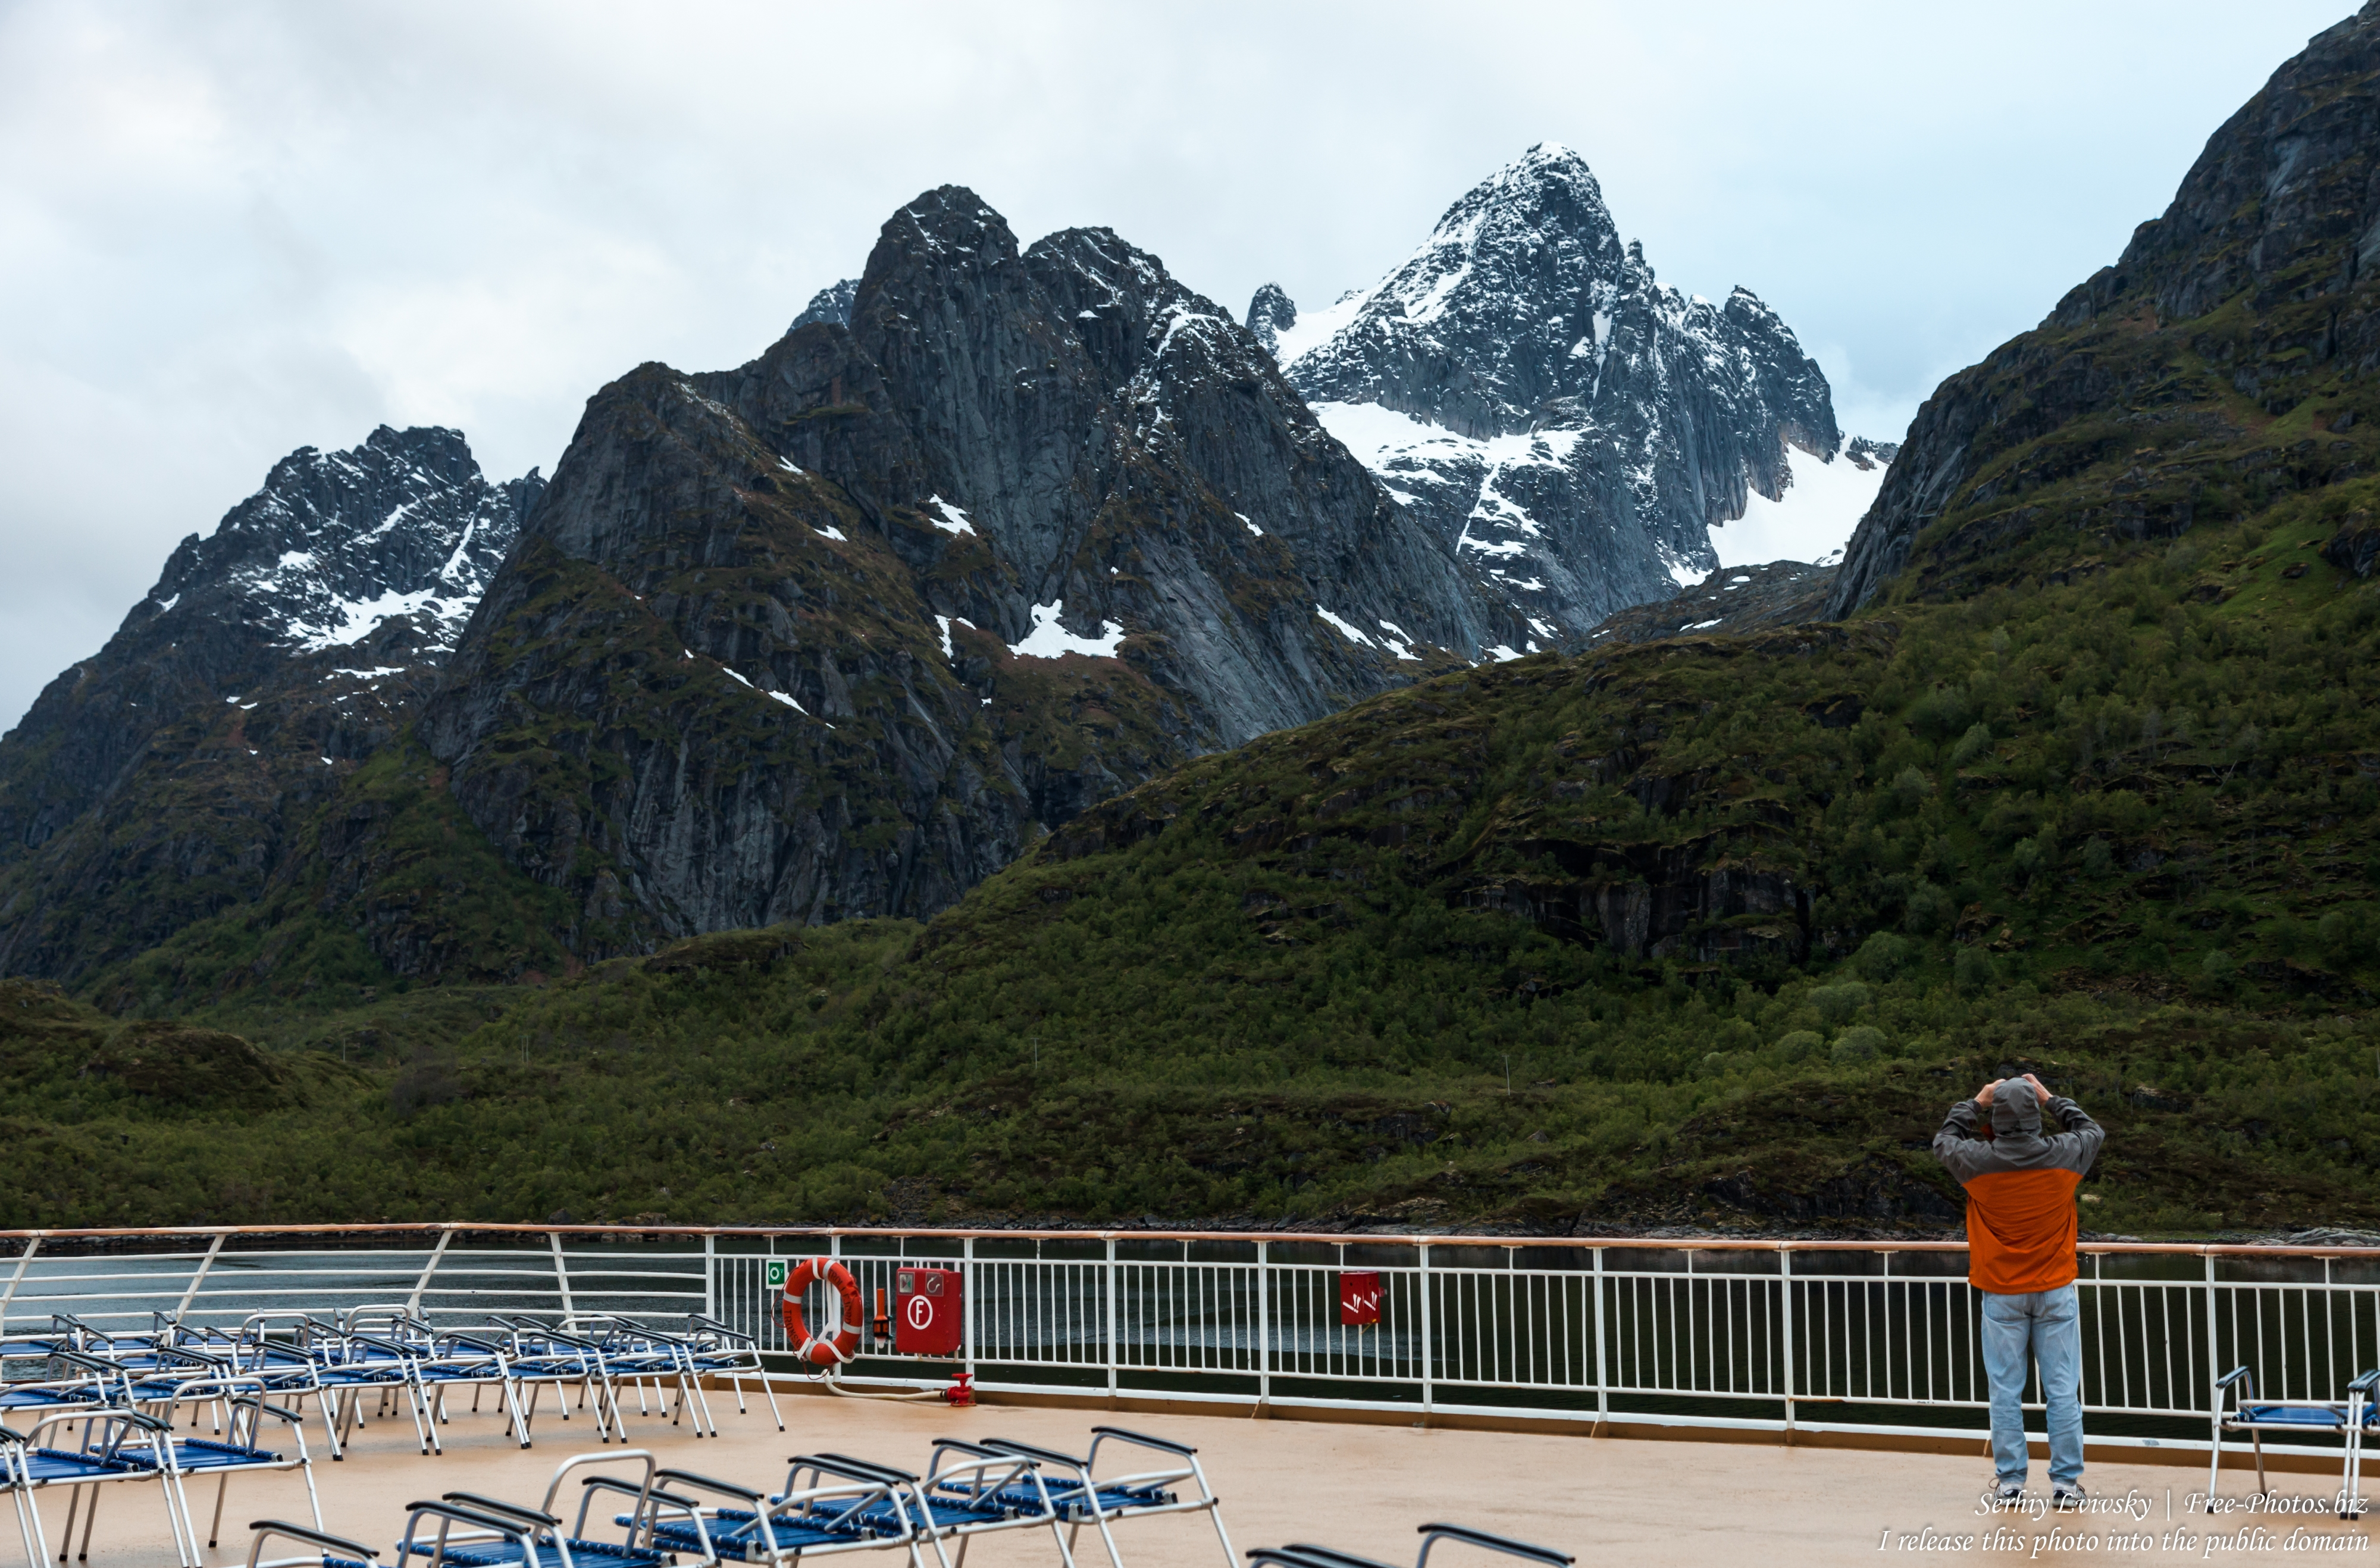 way_from_svolvaer_to_trollfjord_norway_photographed_in_june_2018_by_serhiy_lvivsky_12